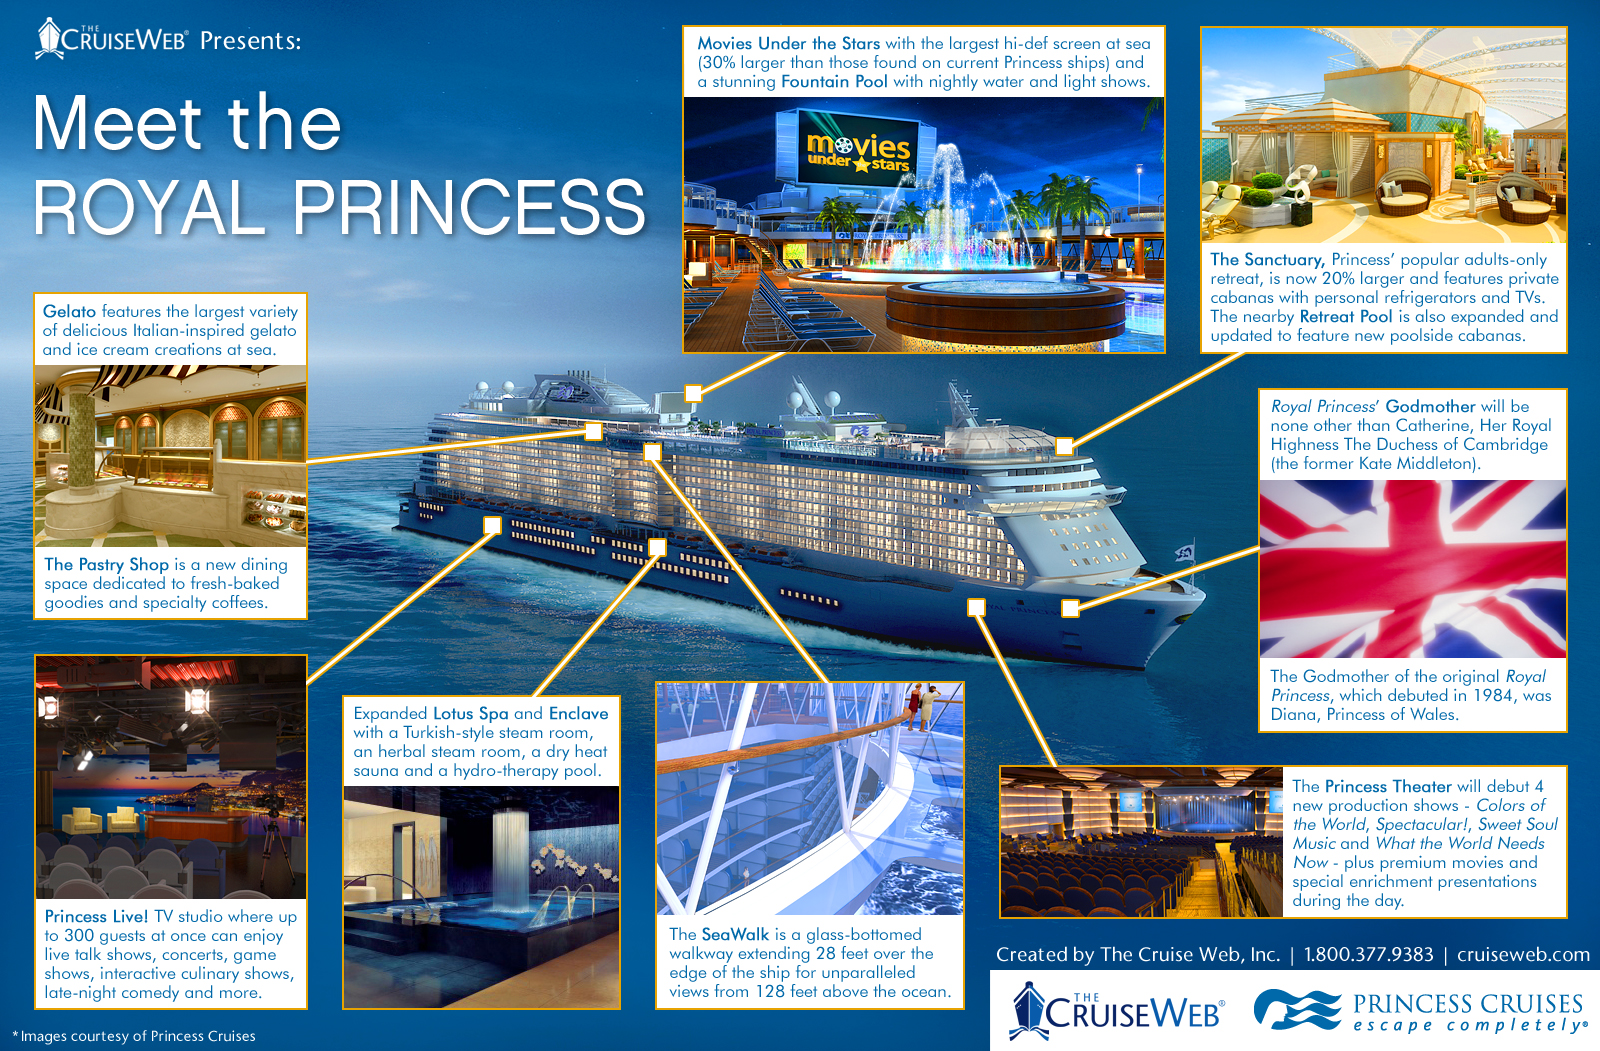 Meet the Royal Princess: An Infographic